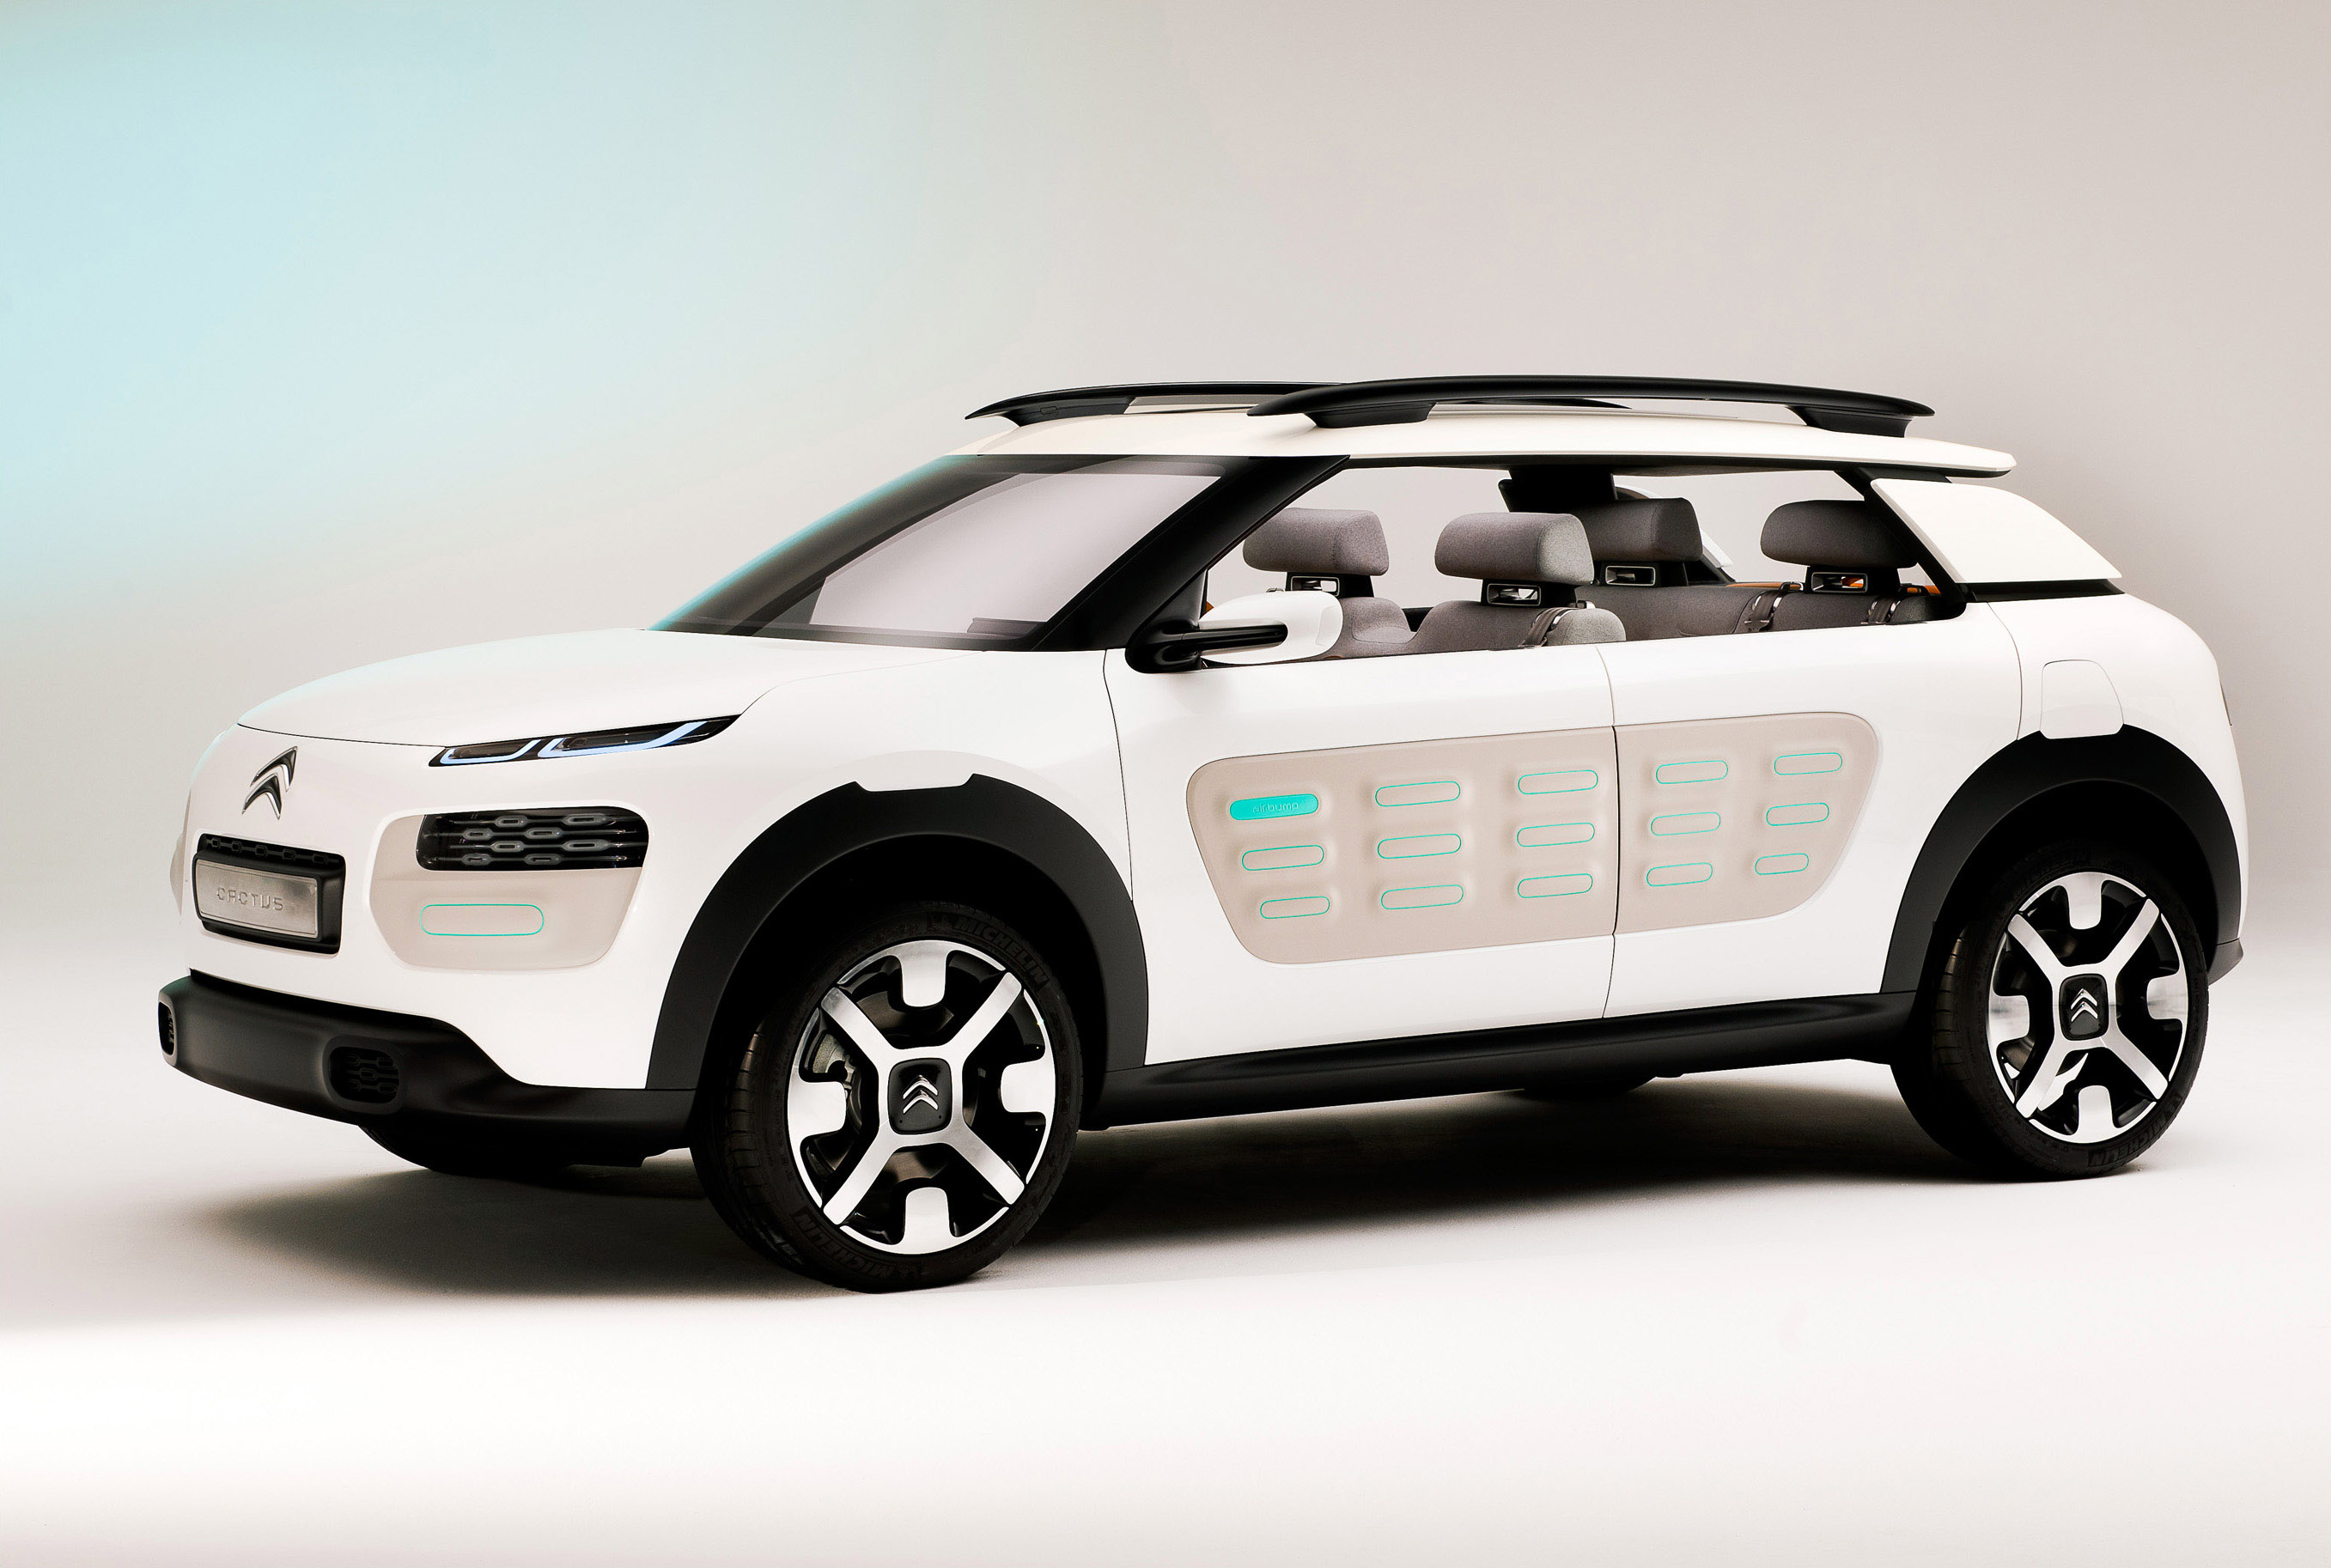 Citroen Cactus Concept photo #1